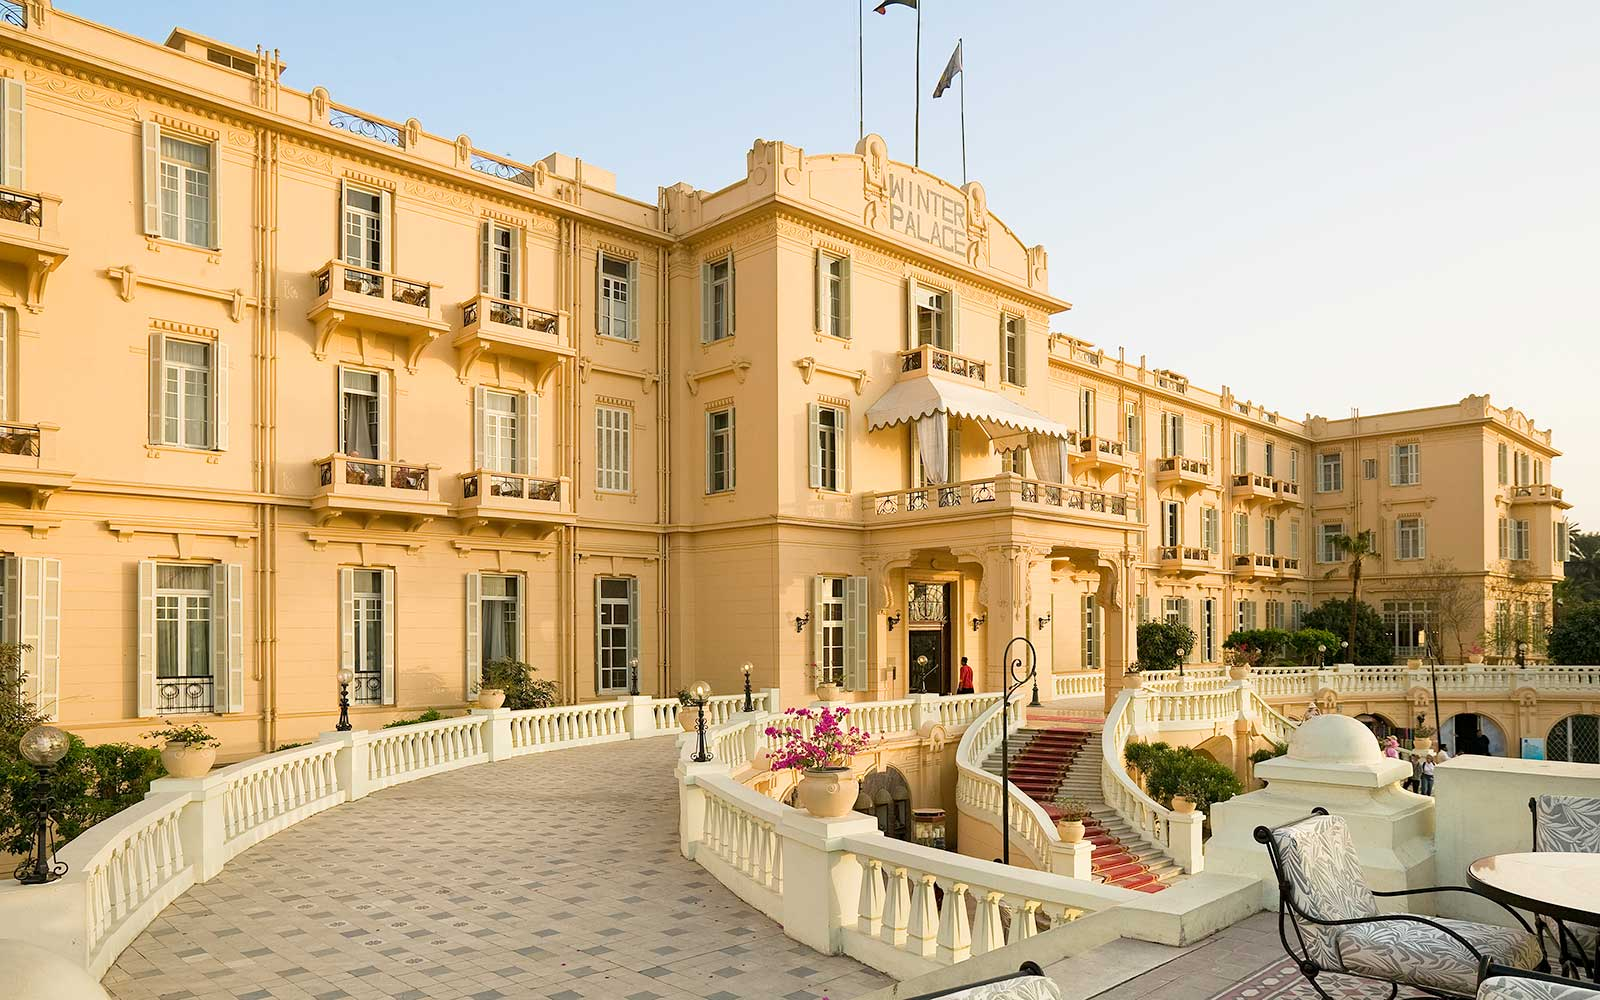 Sofitel Winter Palace Luxor Hotel in North Africa and Middle East